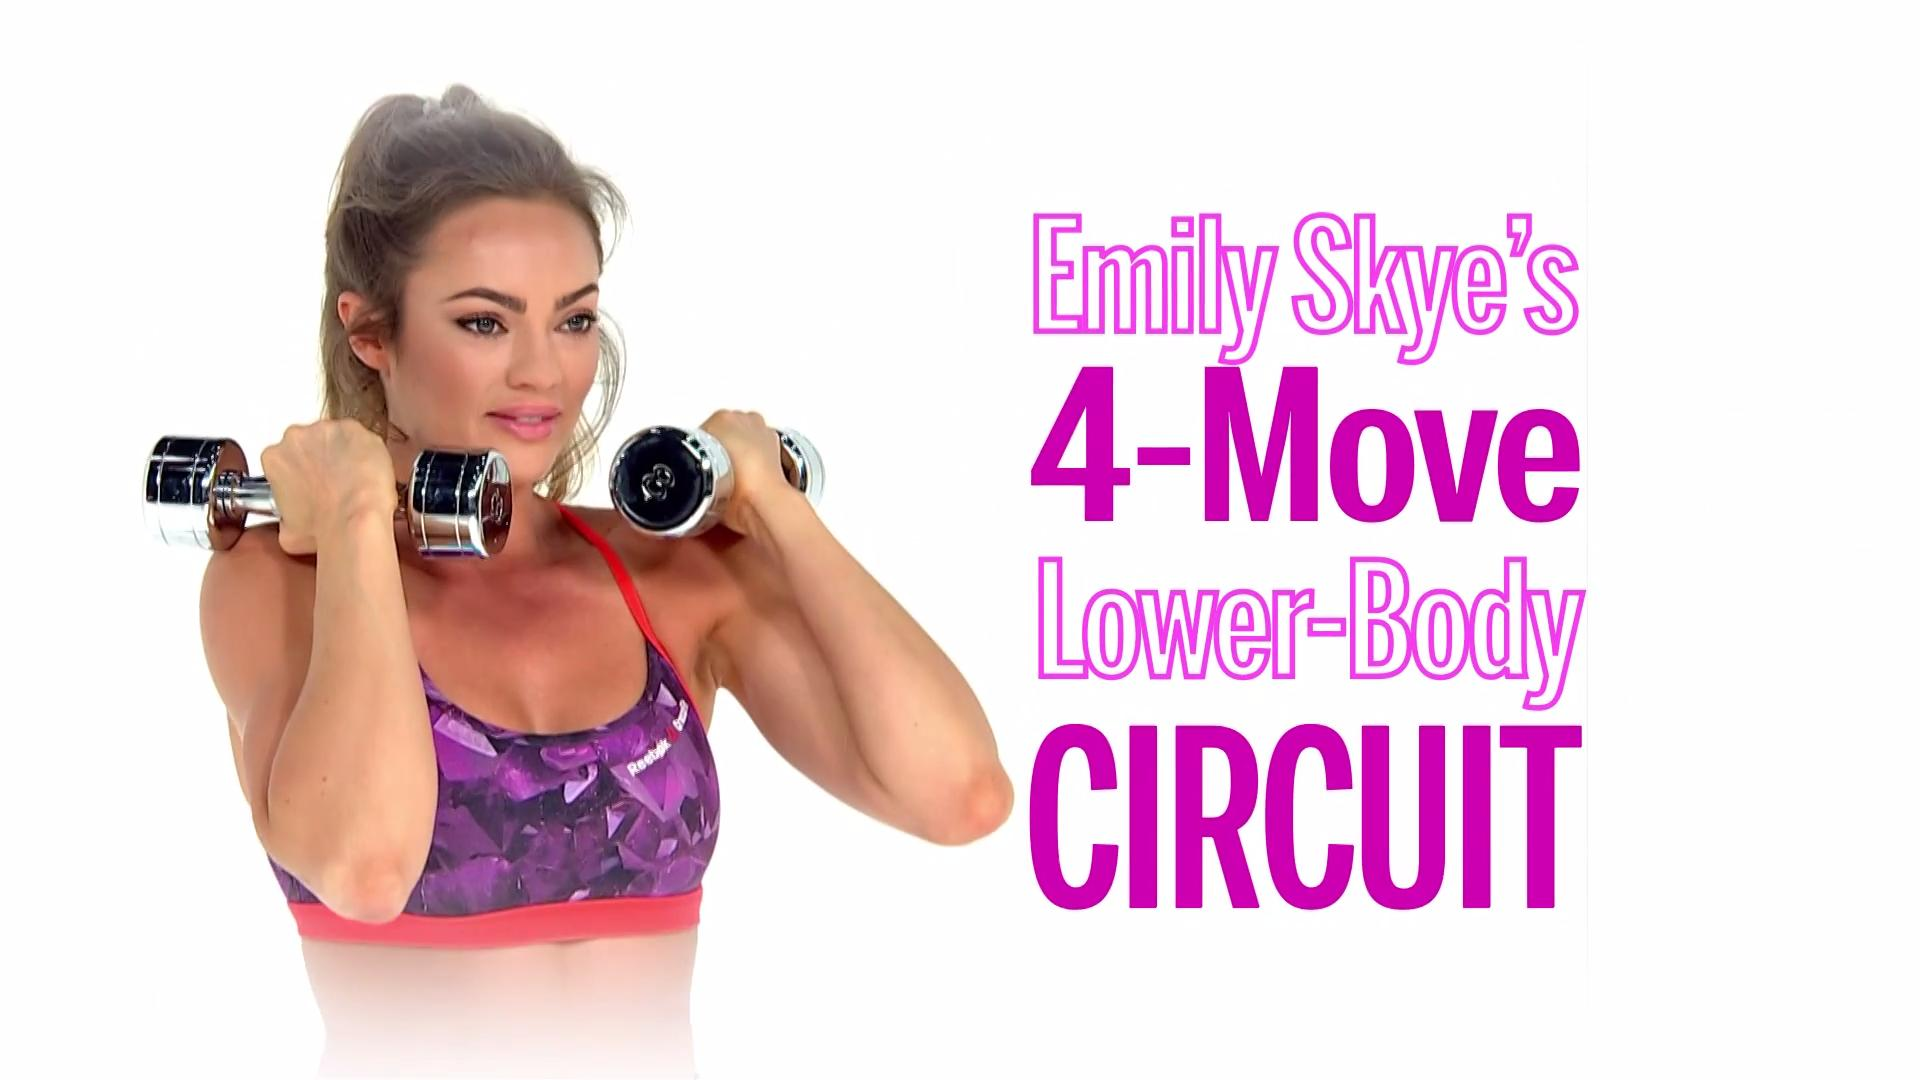 Emily Skye's 4-Move Lower-Body Circuit